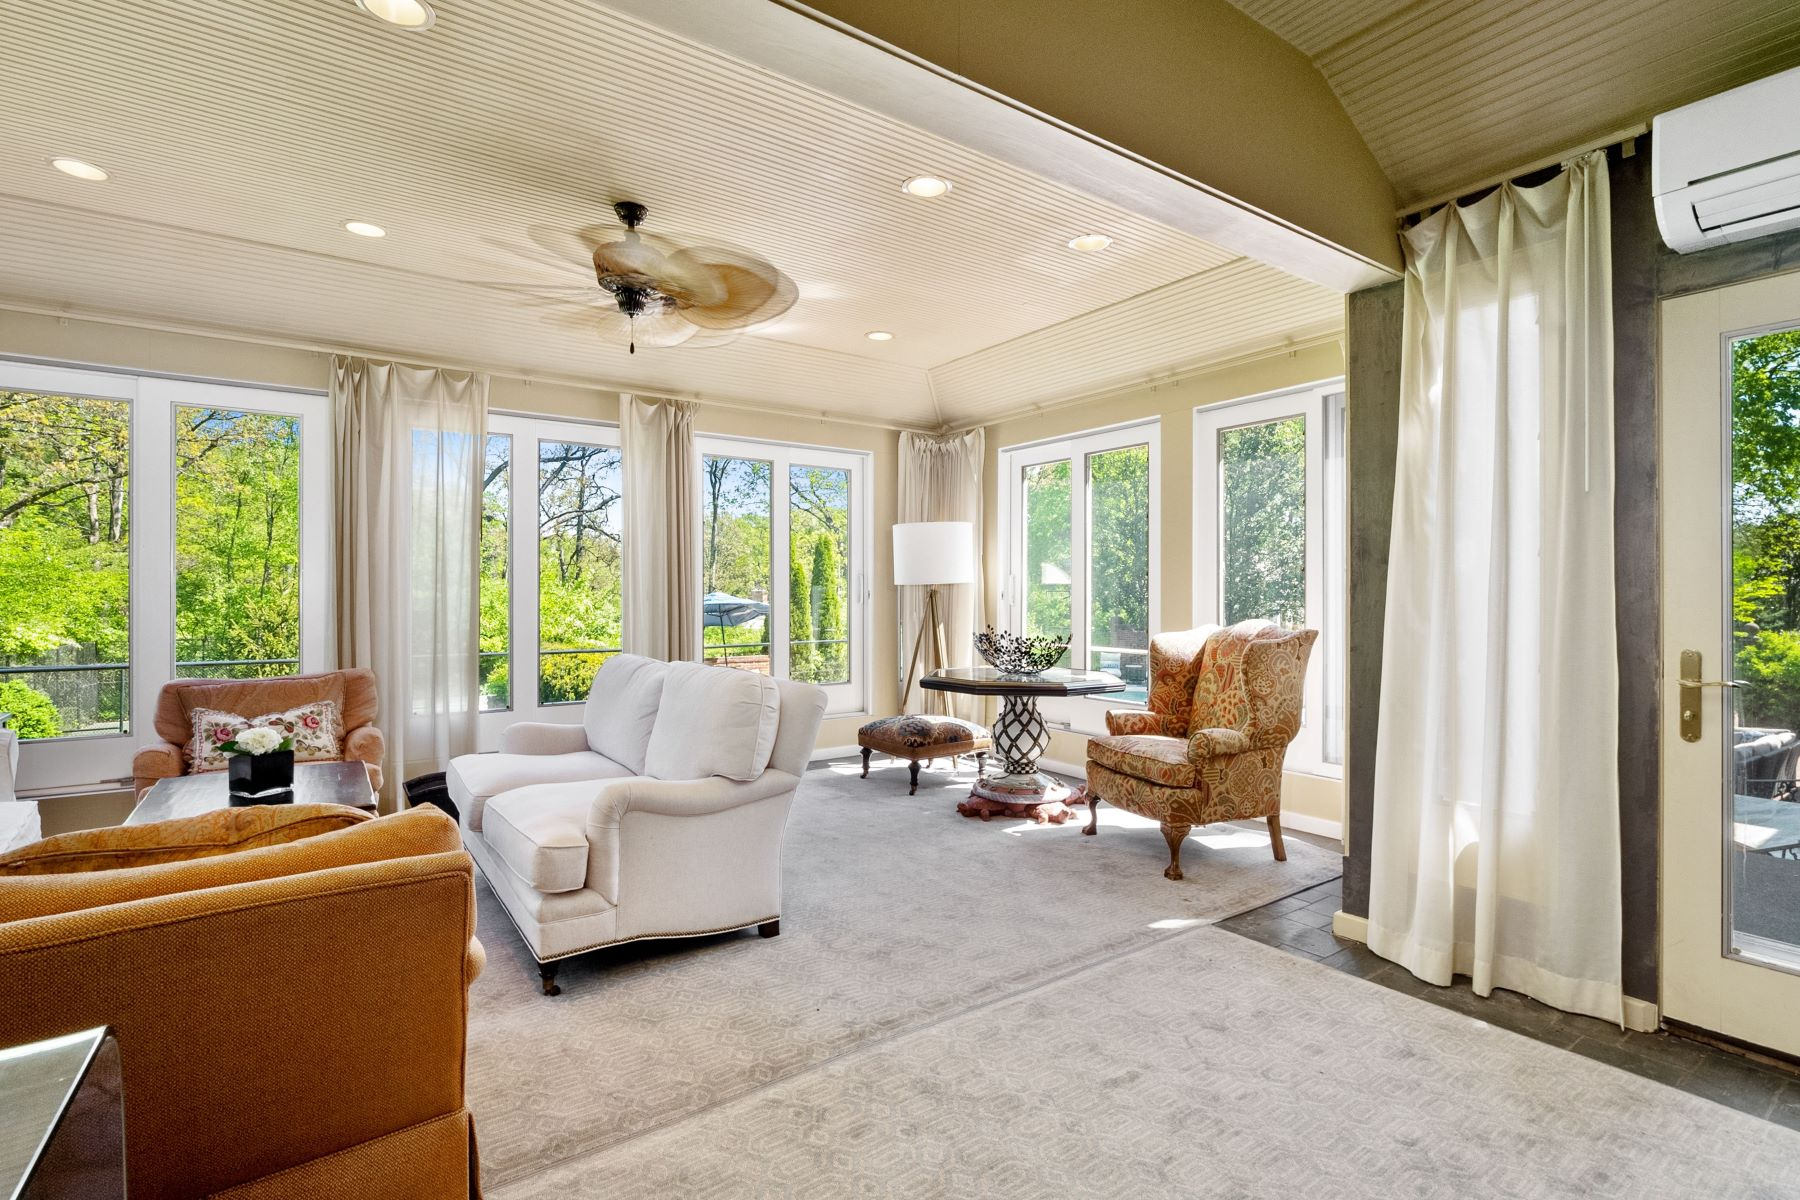 Additional photo for property listing at Country Club Living At Its Best 9875 Litzsinger Road St. Louis, Missouri 63124 United States